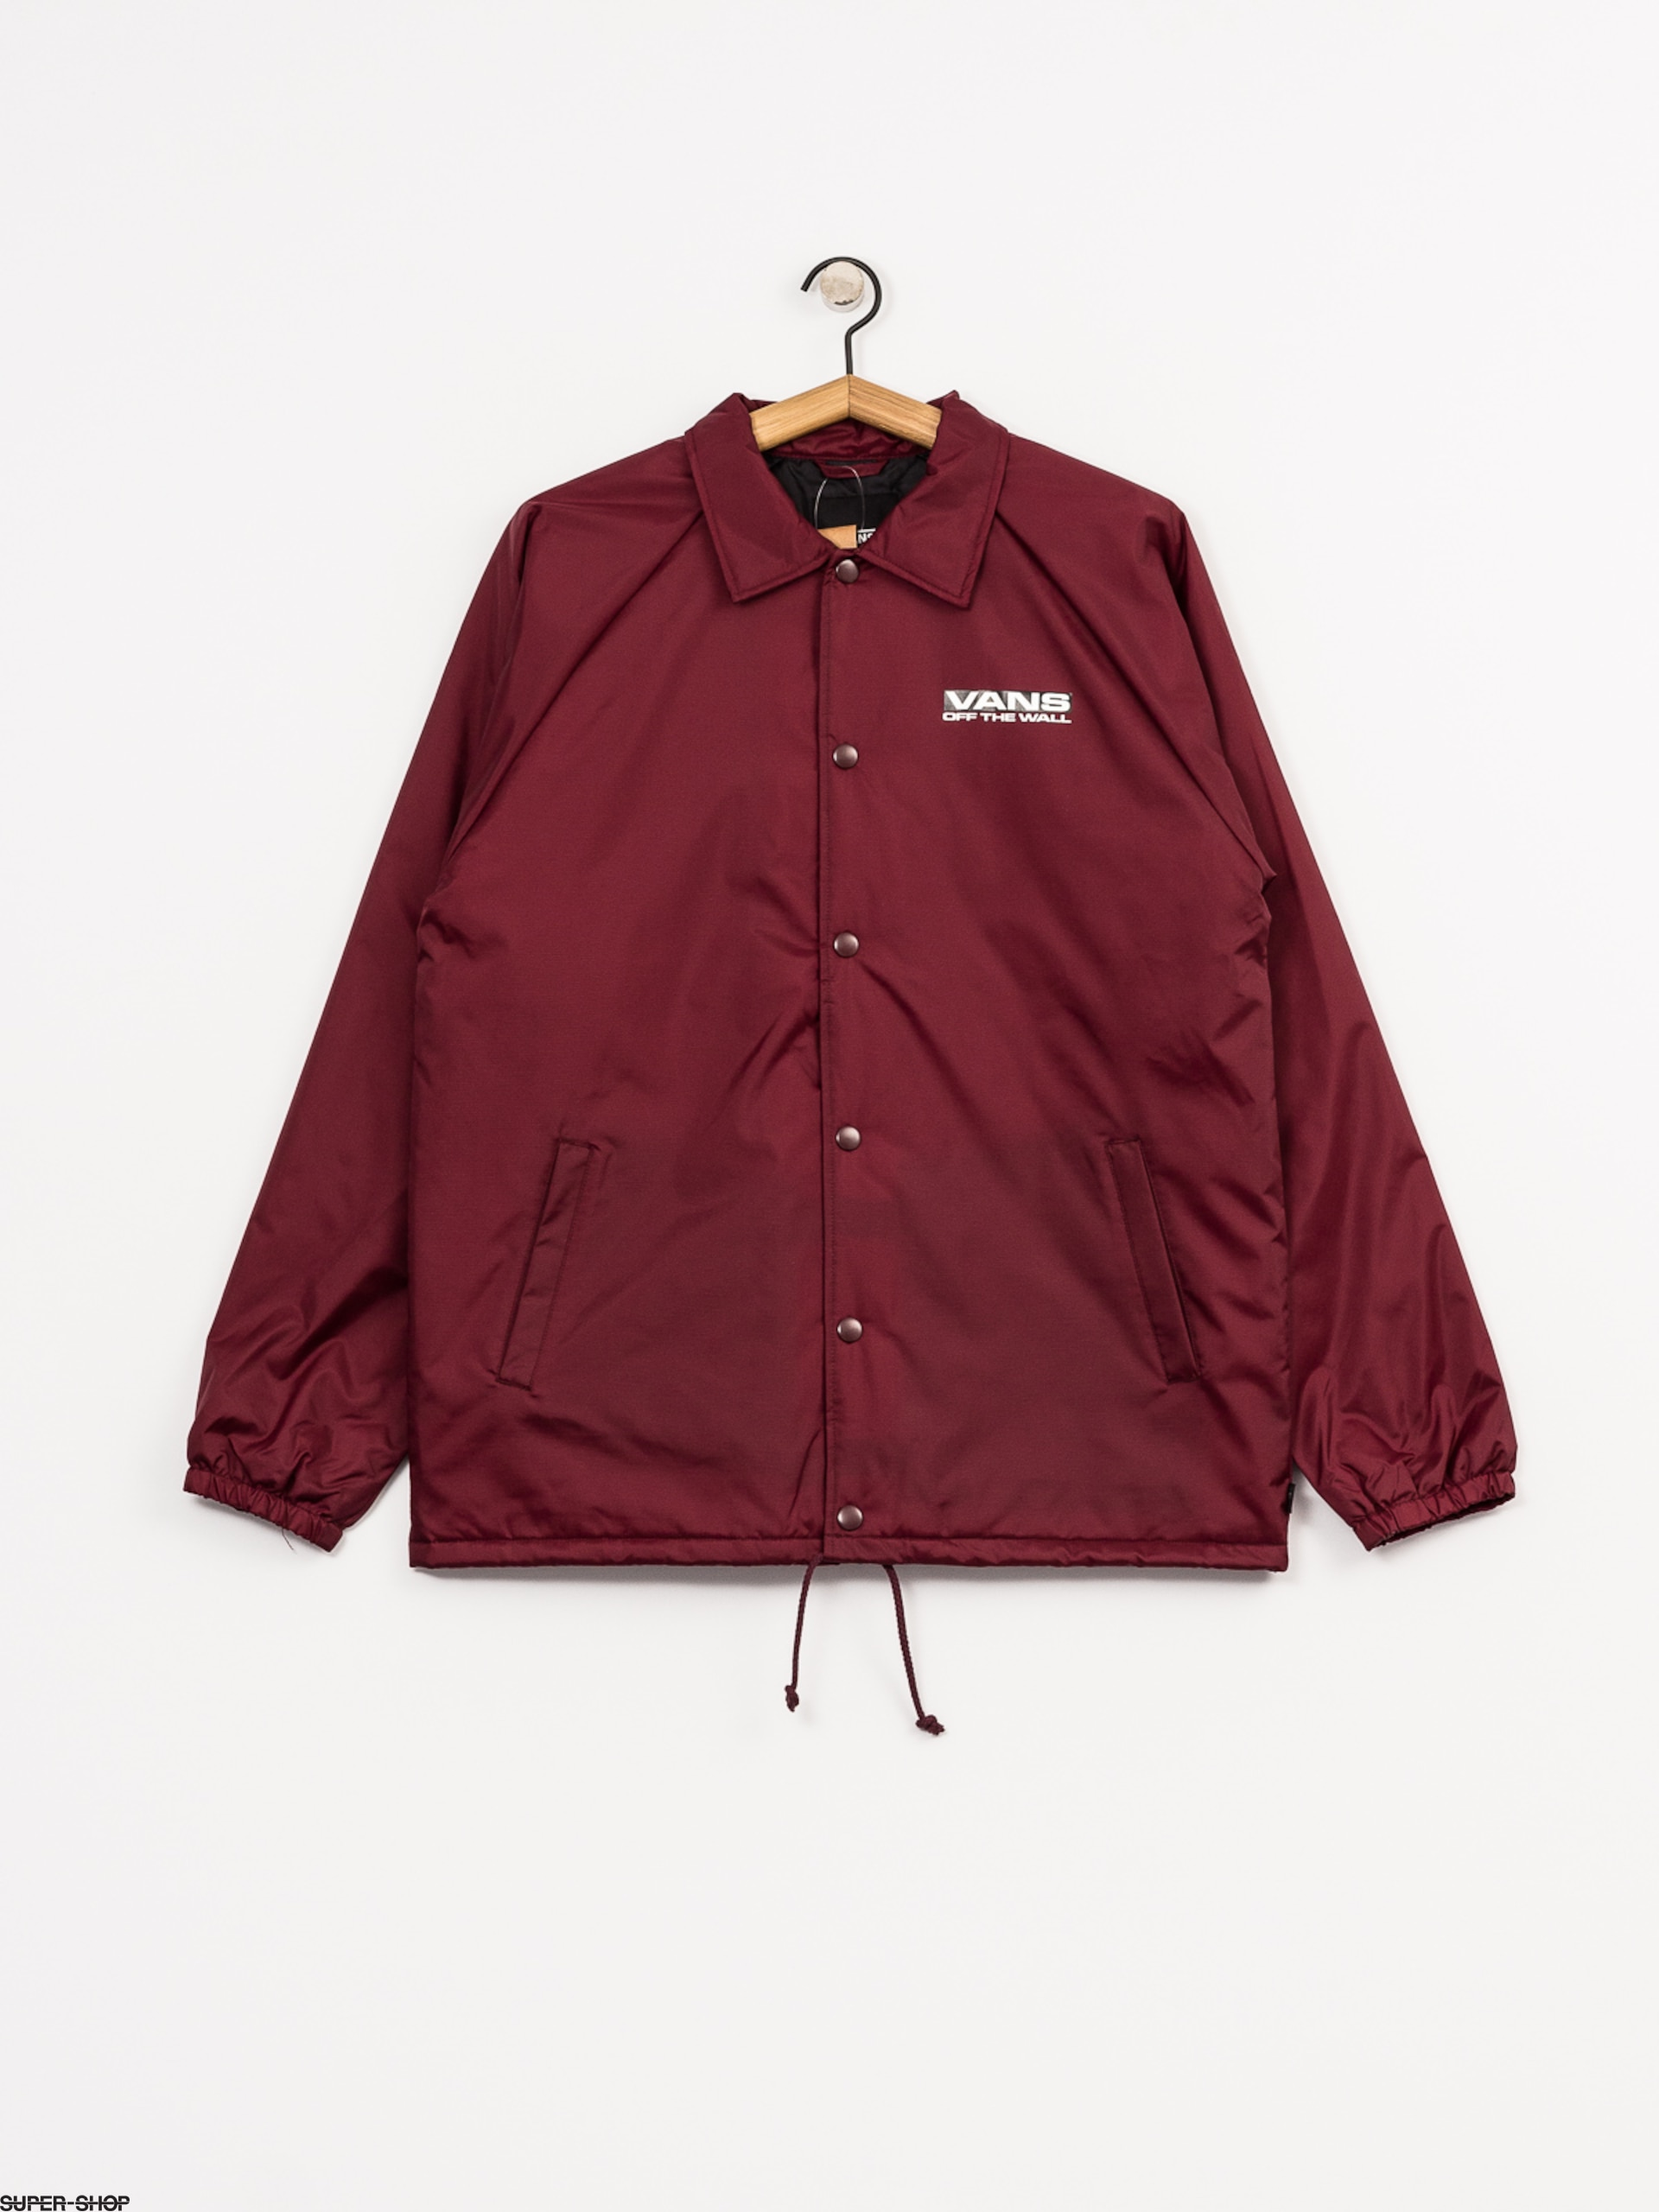 Vans Jacket Torrey Mte (port royale)